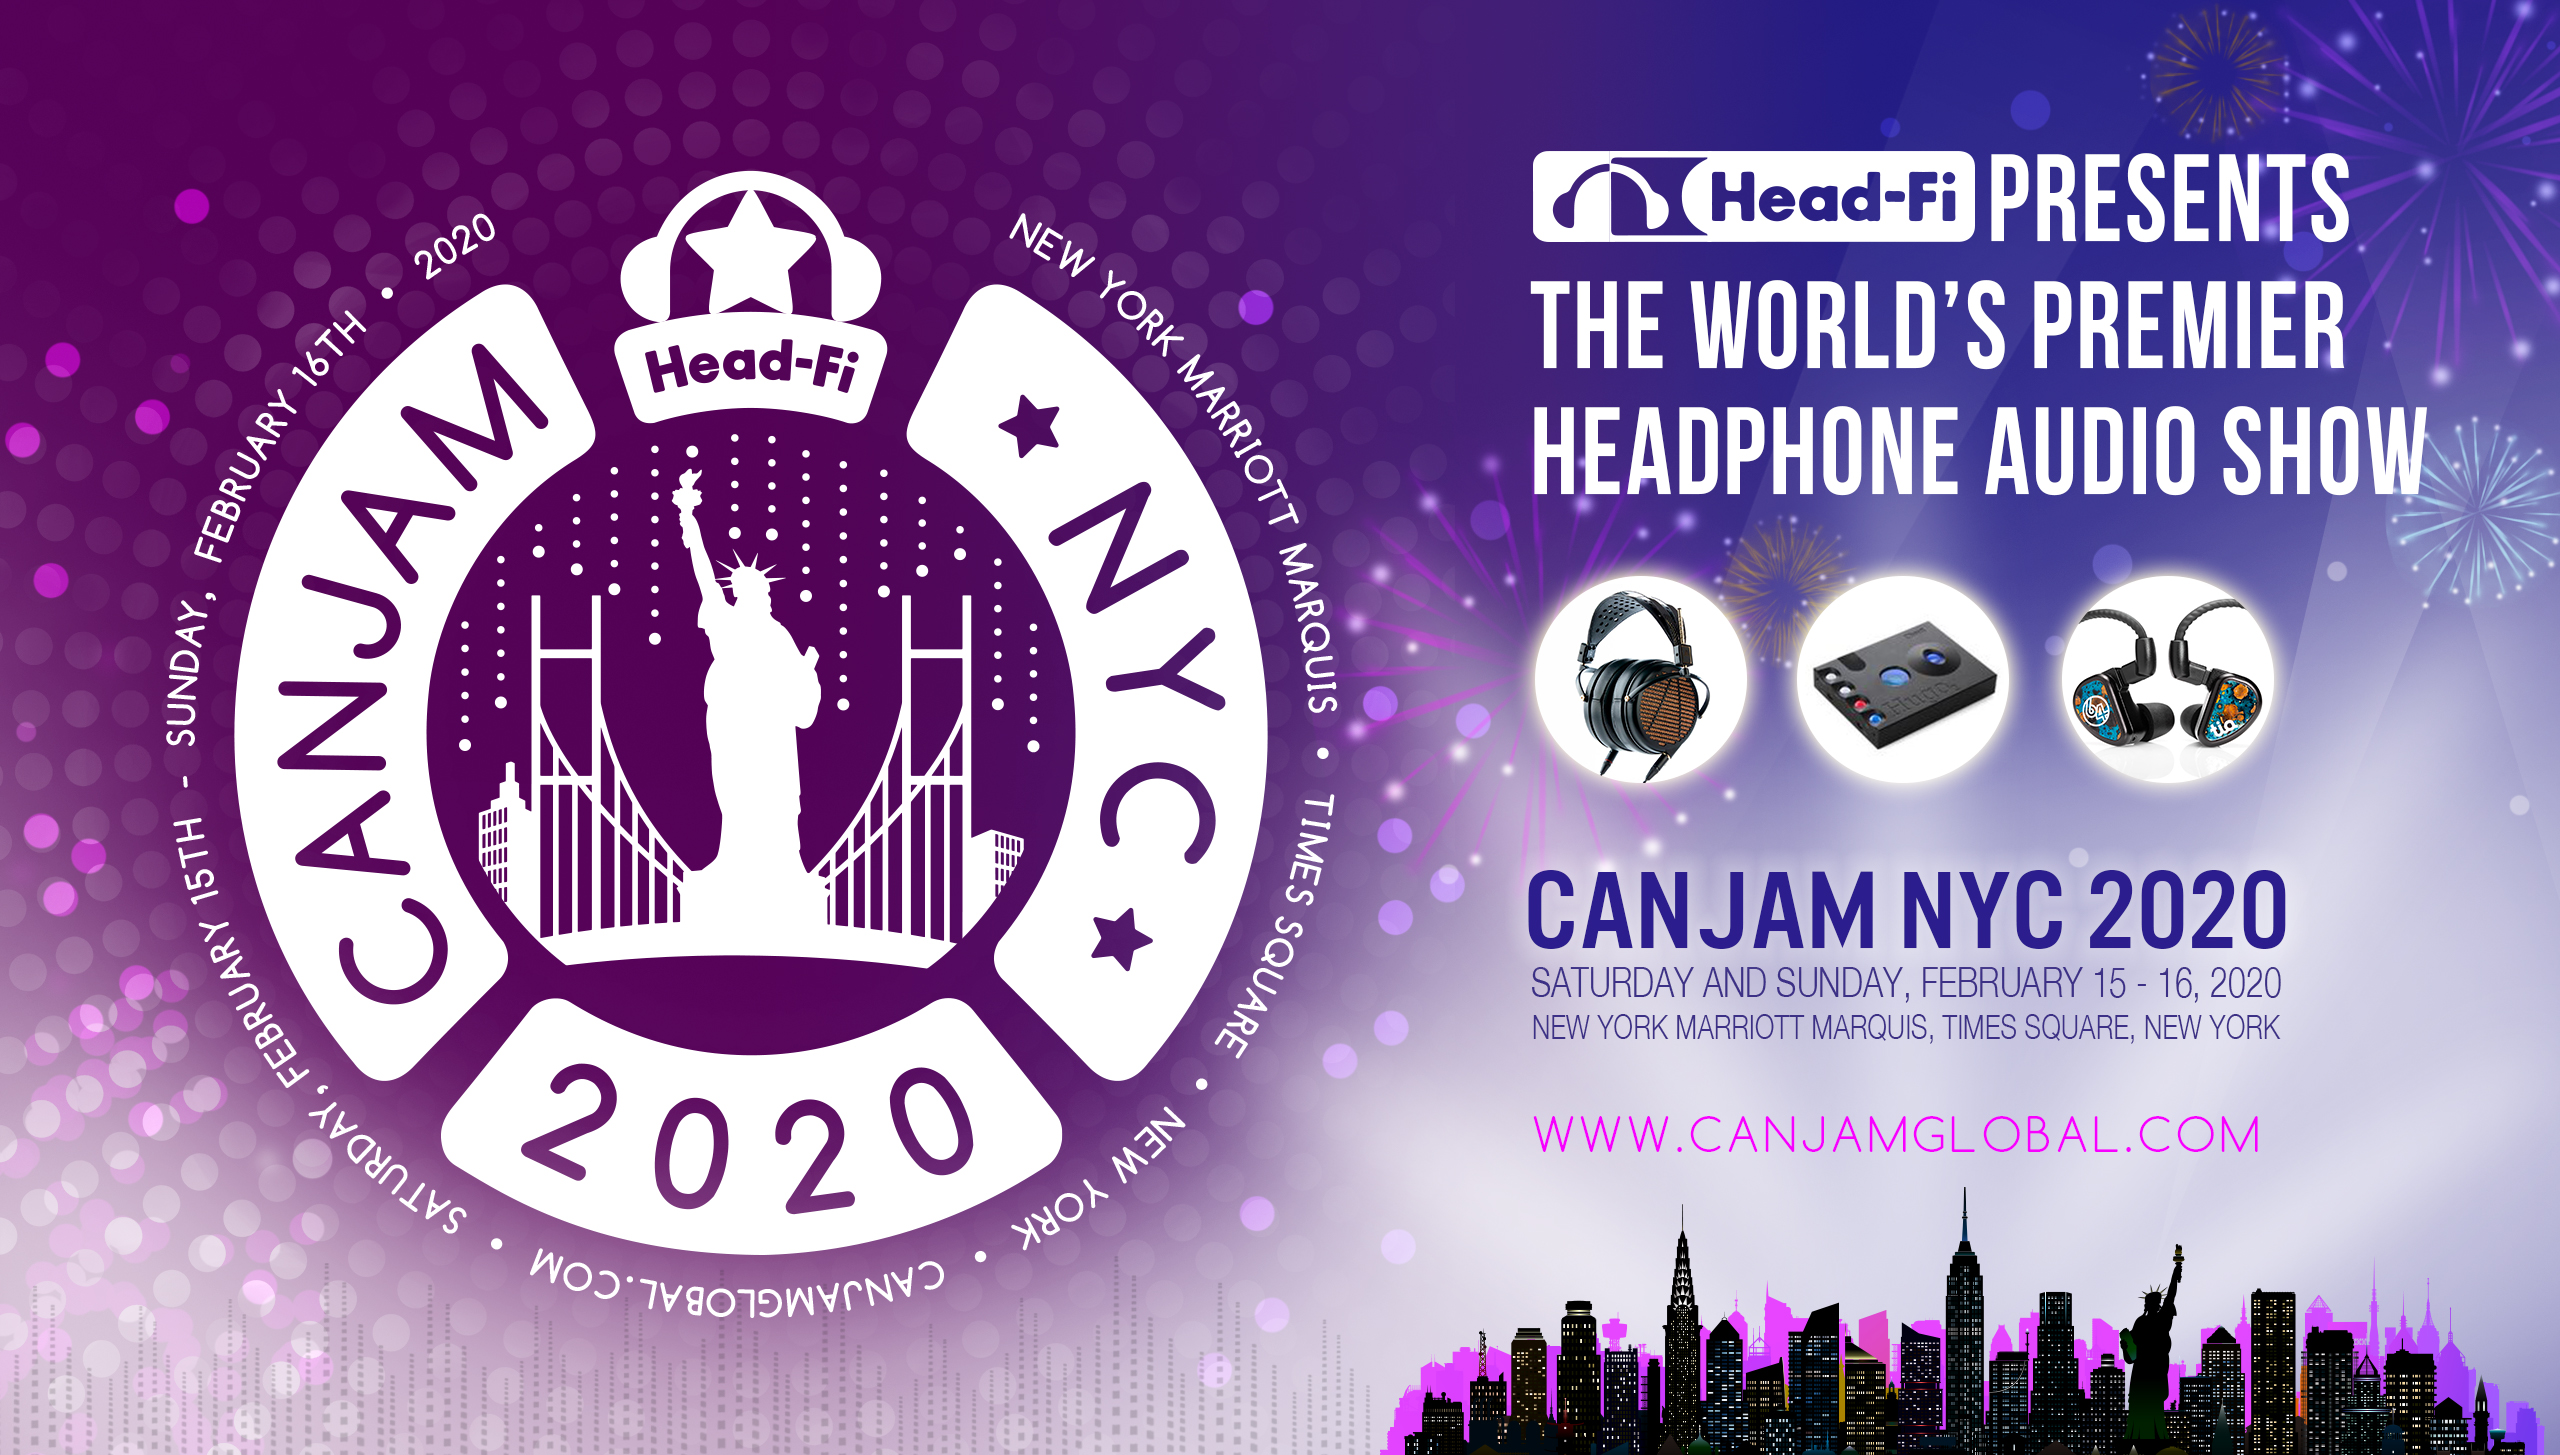 Head-Fi presents the World's Headphone Audio Show: CanJam NYC 2020 / in the heart of iconic Times Square at the New York Marriott Marquis / Saturday, February 15 10am-6pm & Sunday, February 16 10am-5pm